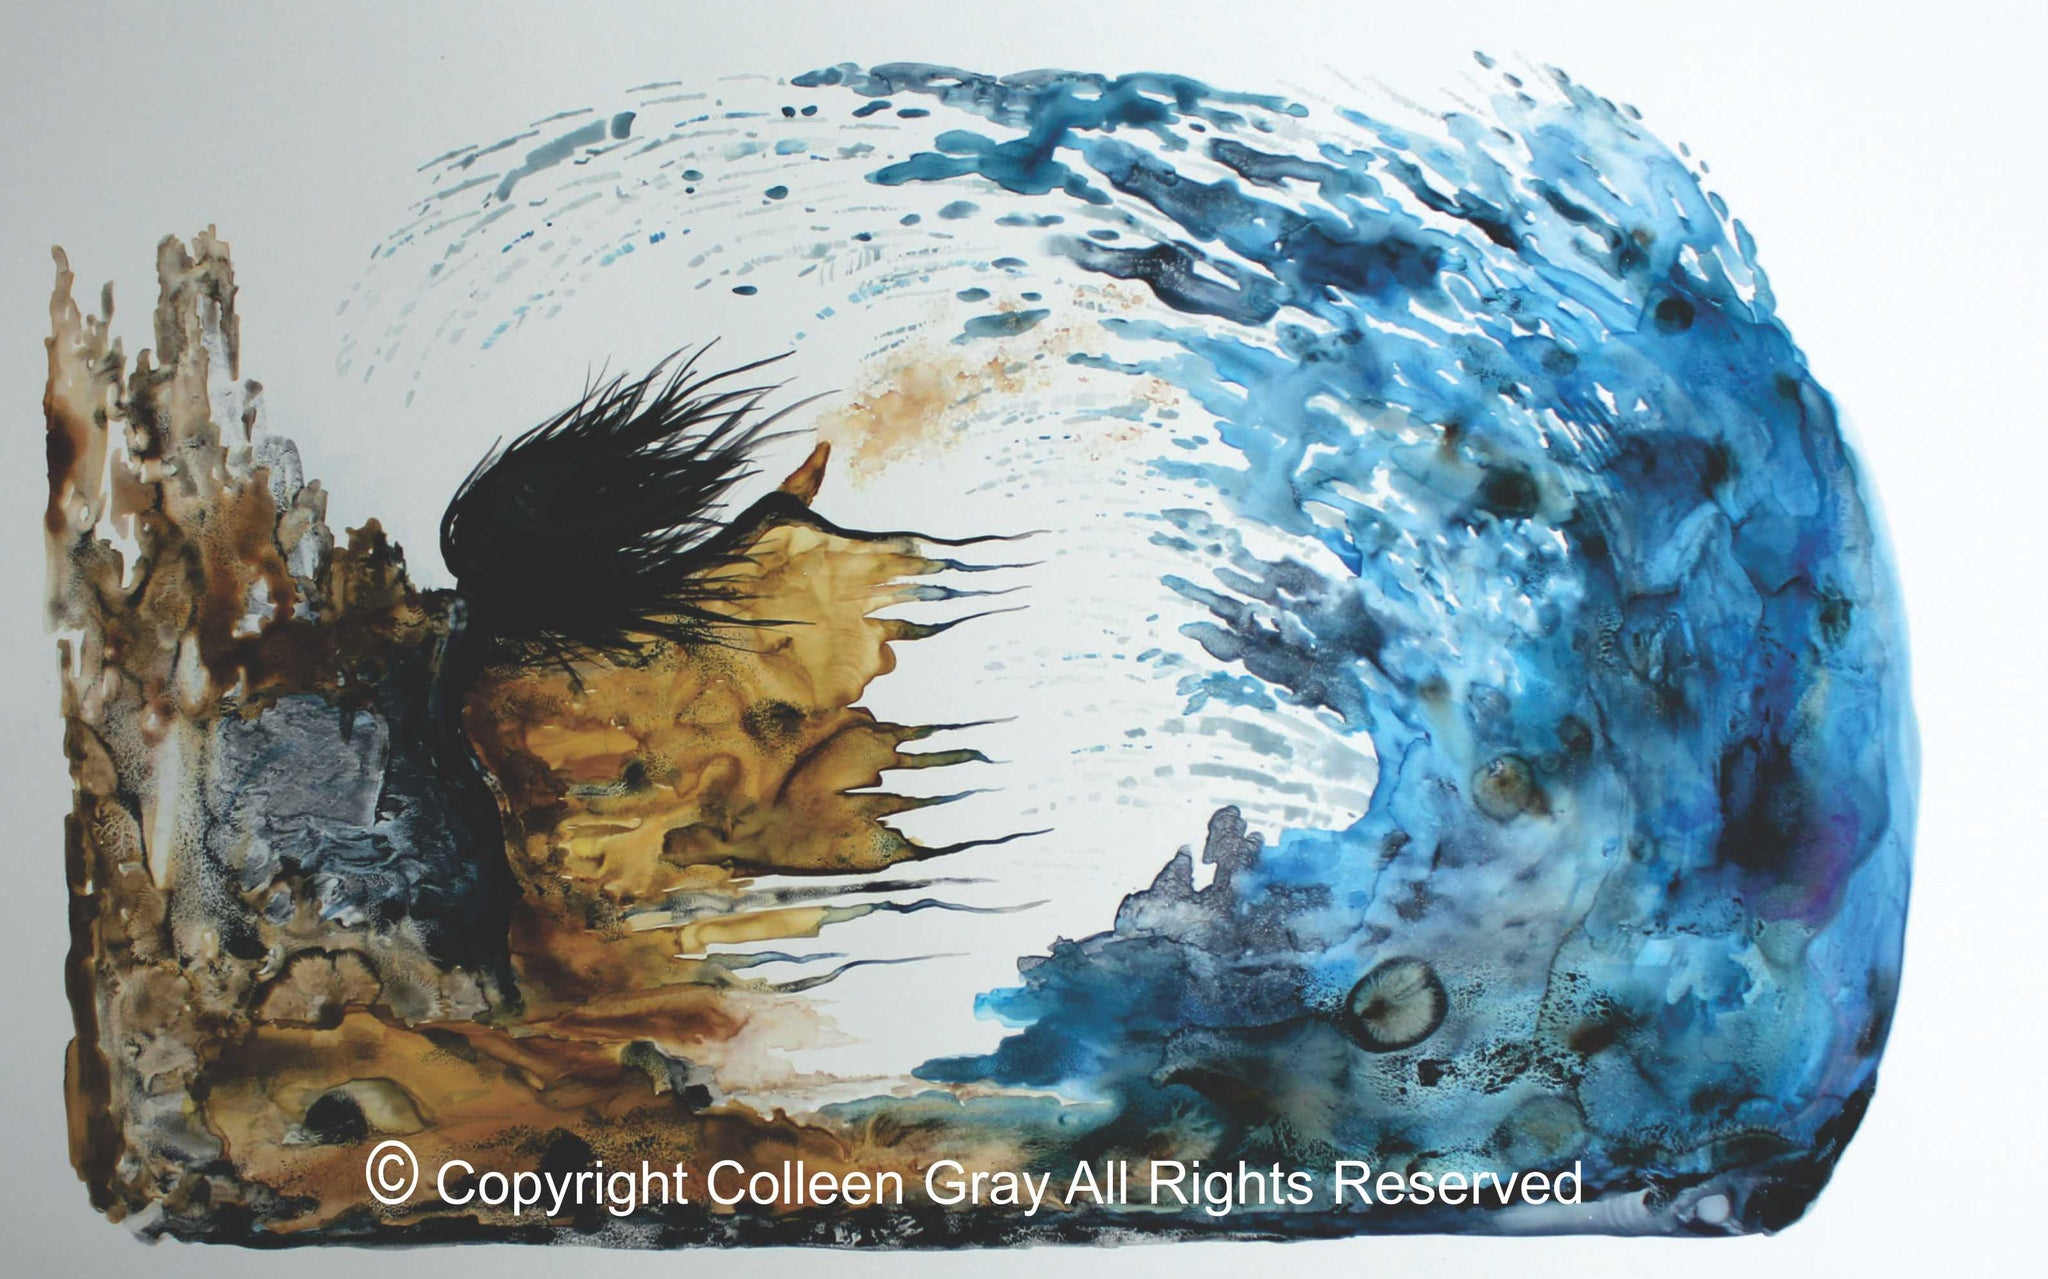 Image of Title: Woman Art Card by Metis Artist Colleen Gray Indigenous Canadian Art Work. Woman with long flowing hair, outstretched arms, water huge wave. For sale at https://artforaidshop.ca